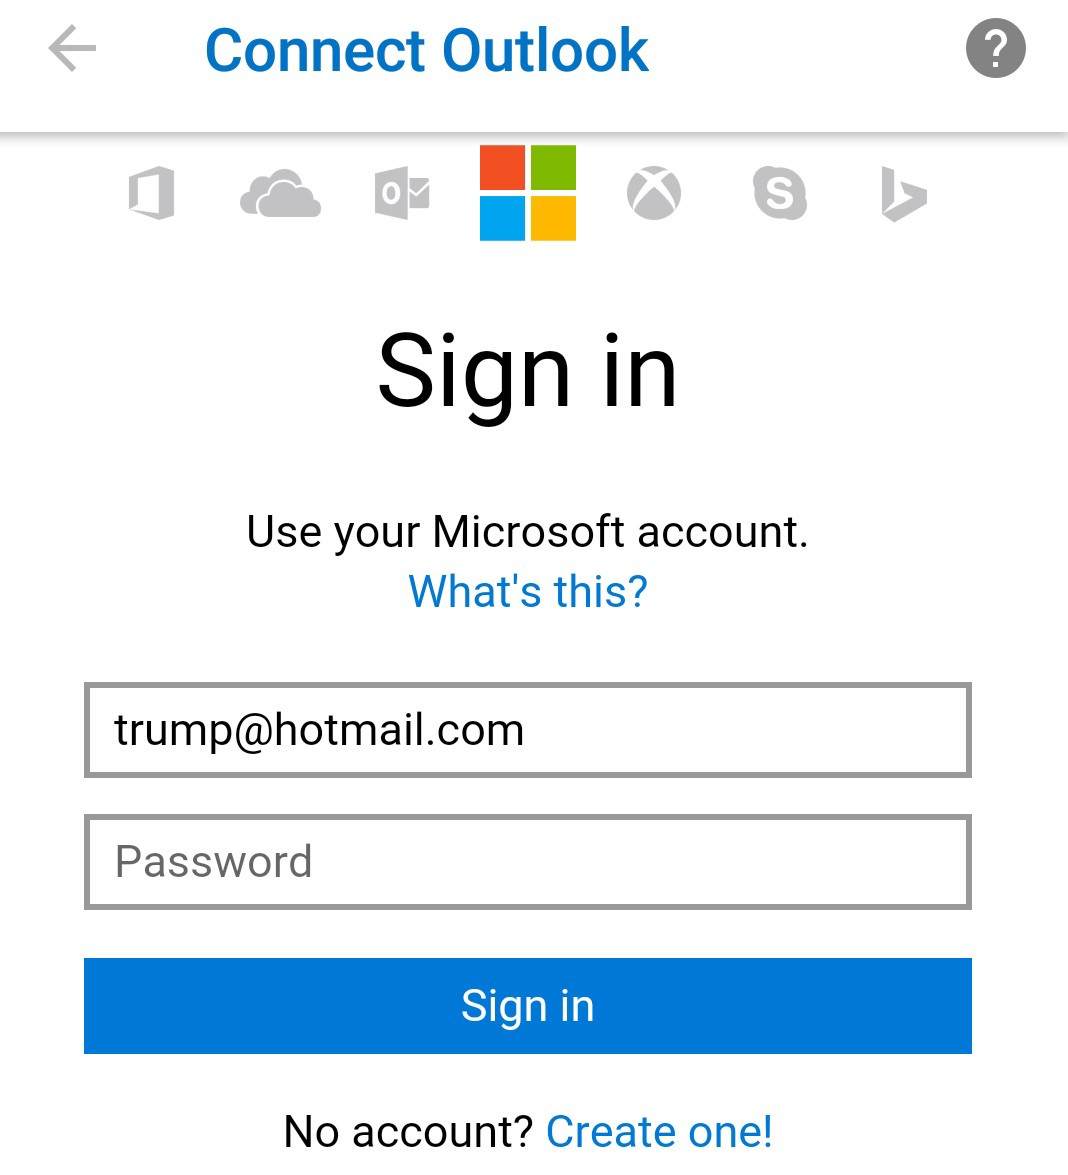 Hotmail Sign In. Hotmail, now upgraded to Outlook, is a